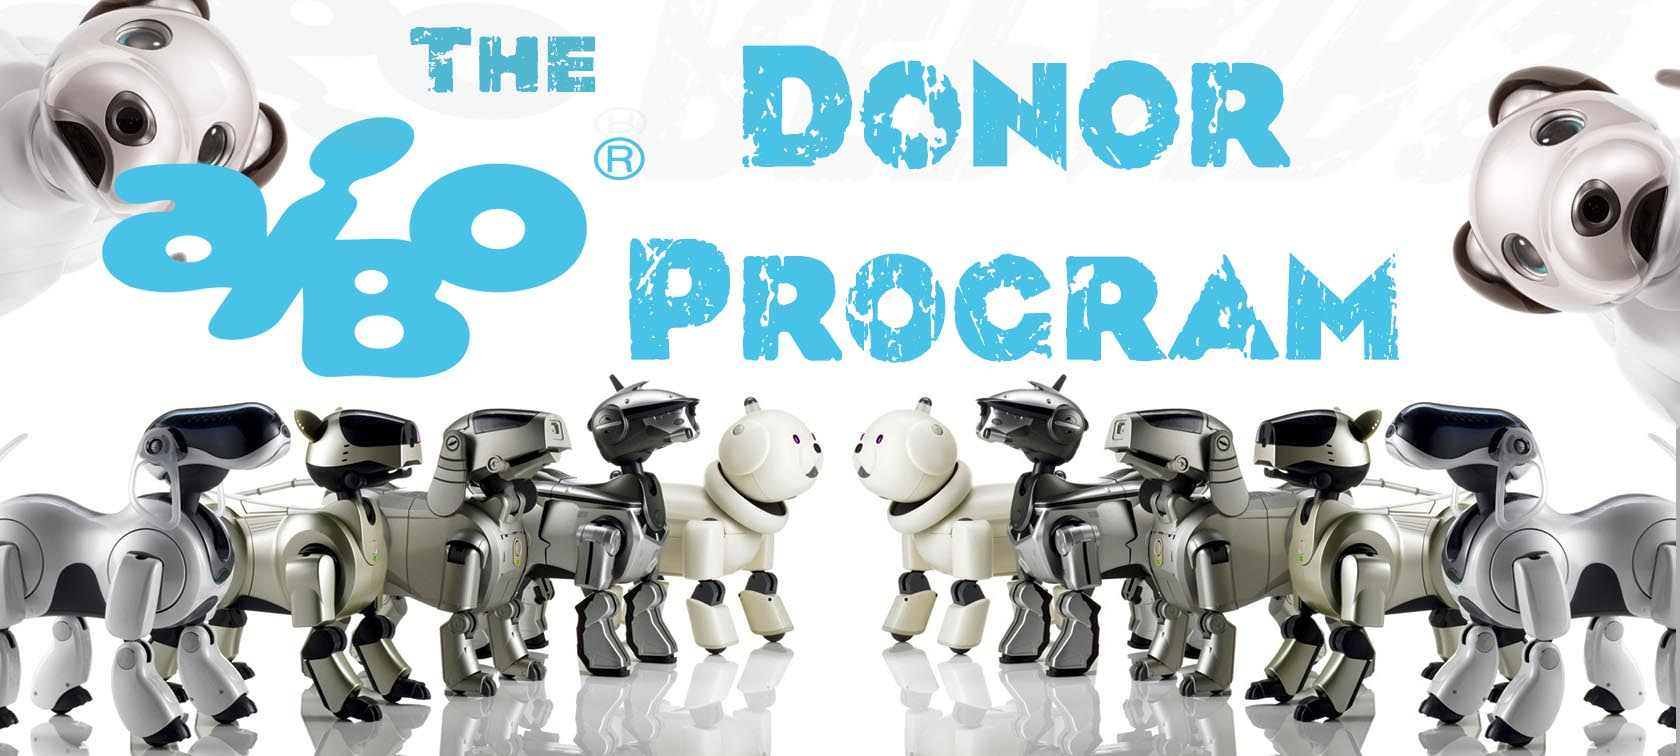 aibo-donor-program-main-banner